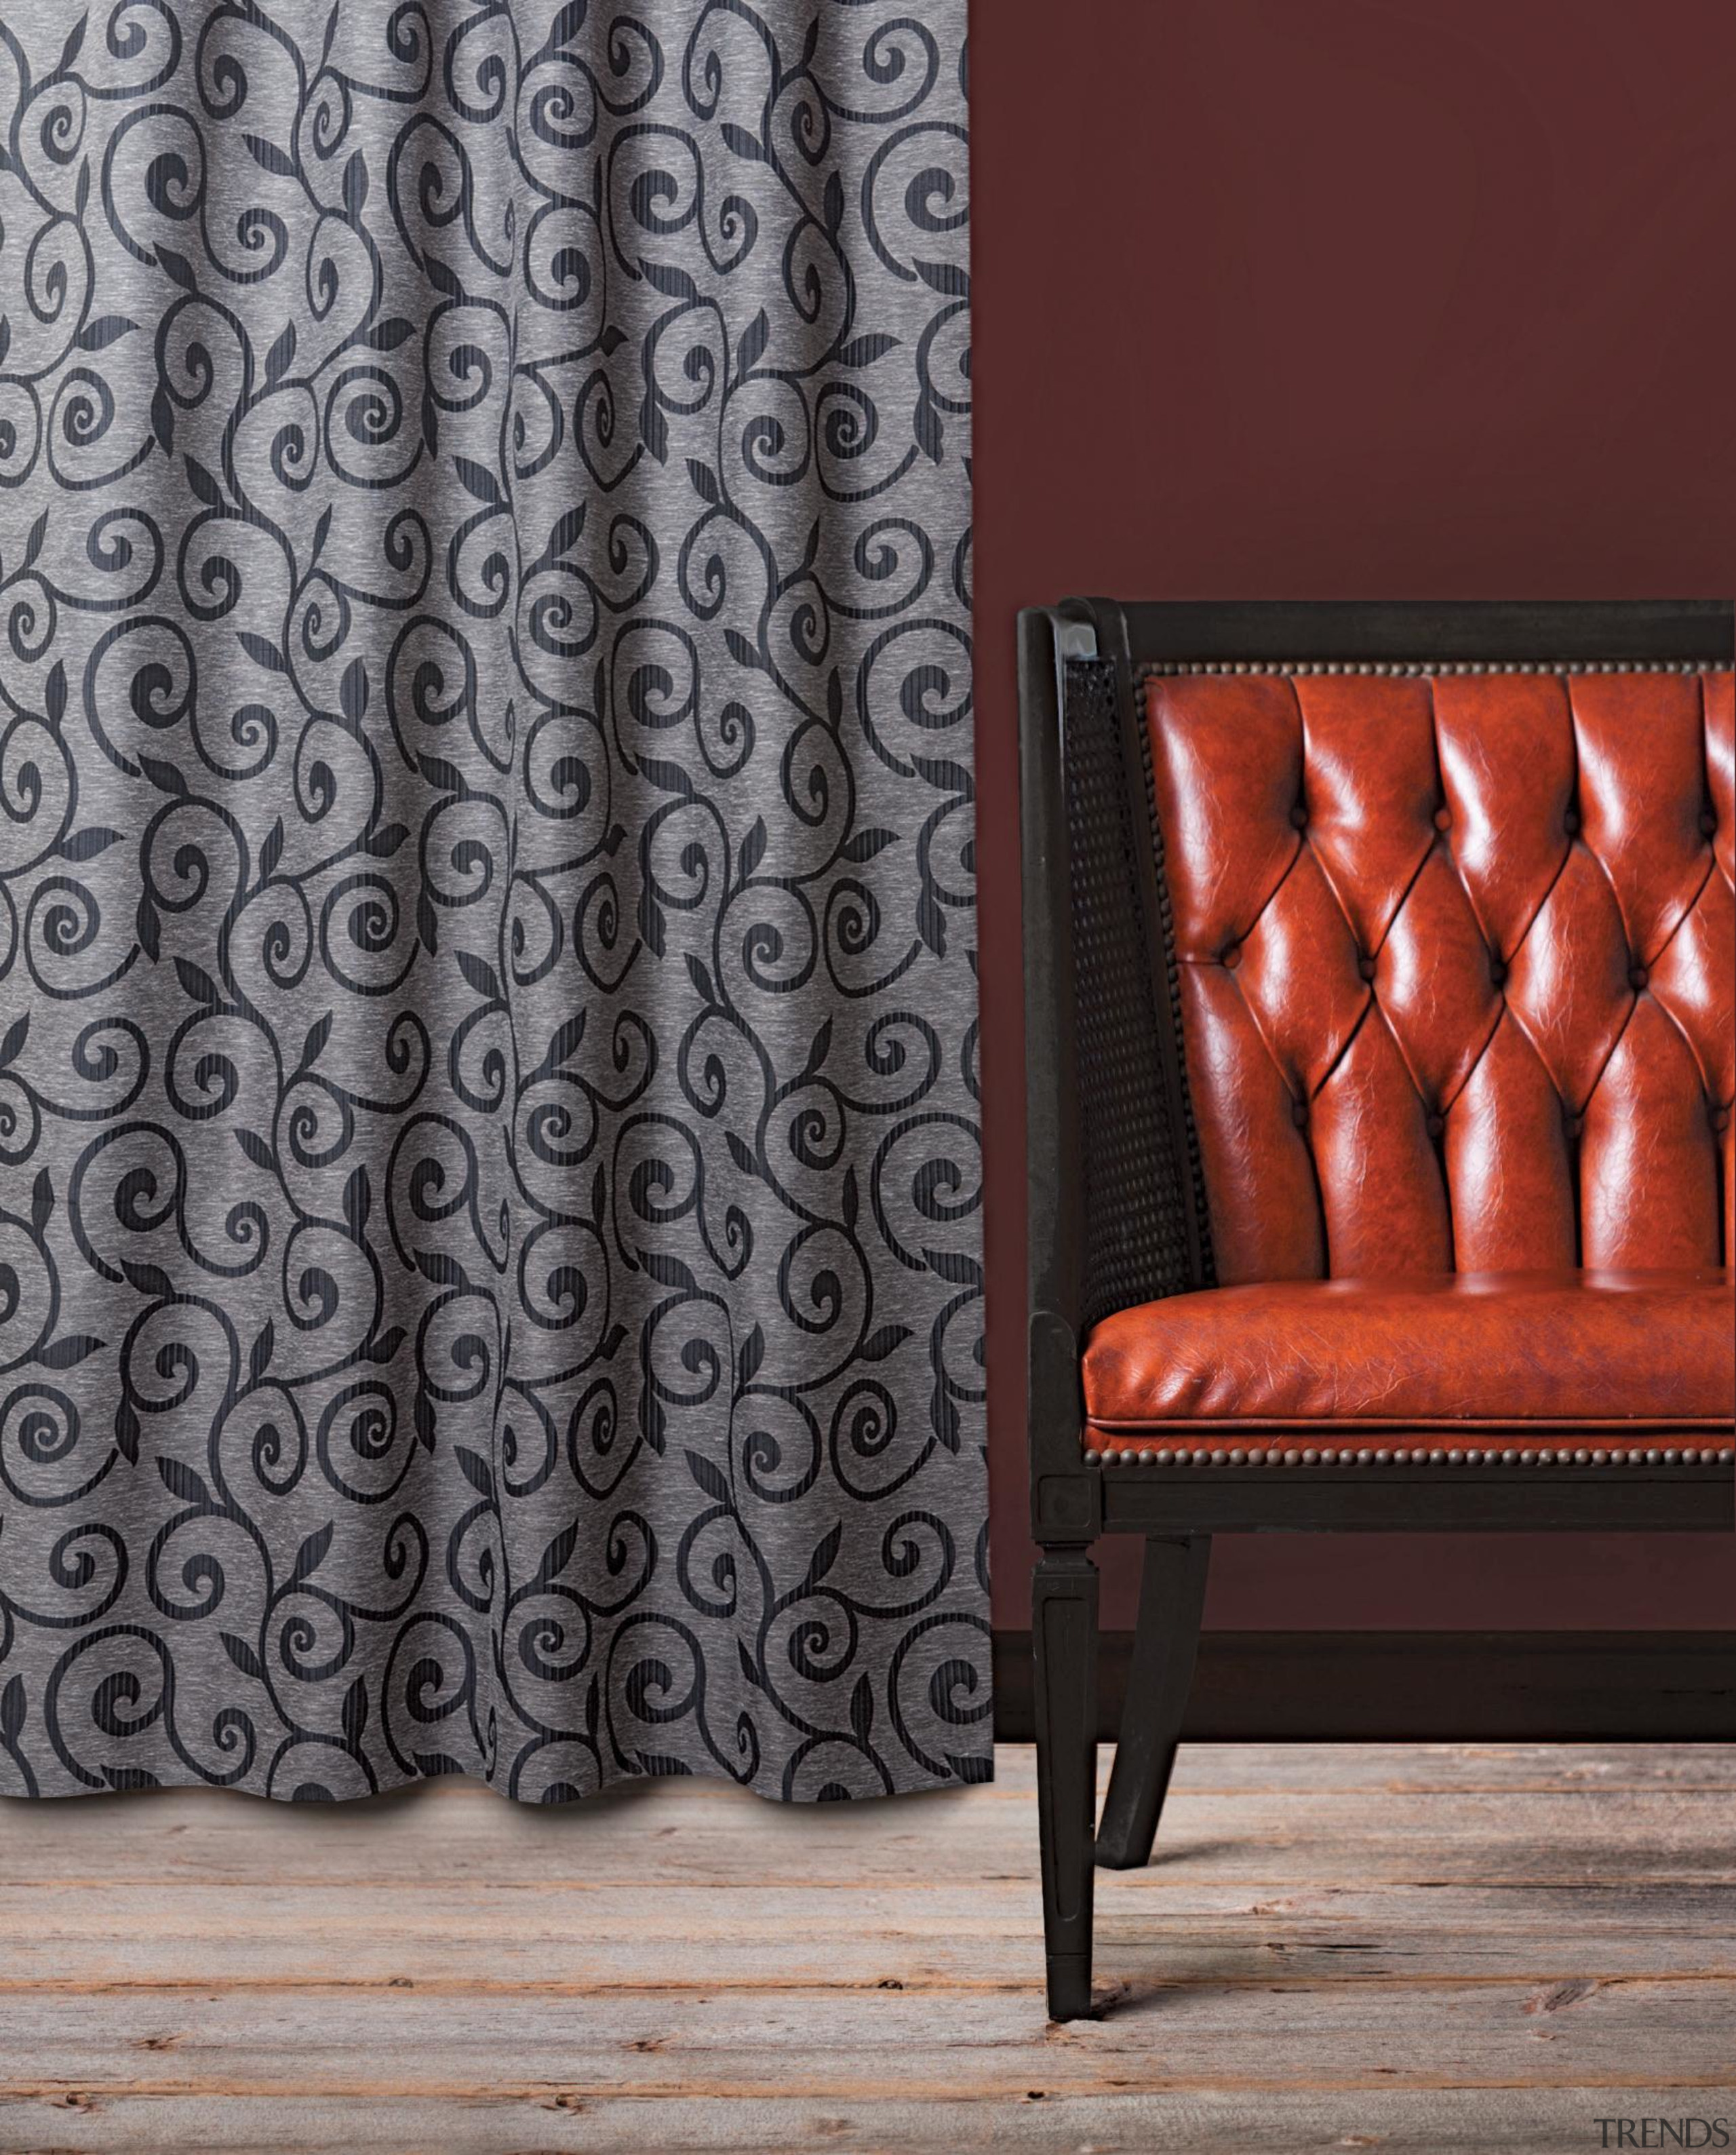 Lyrical Room Charcoal - curtain | floor | curtain, floor, interior design, pattern, textile, wall, window covering, window treatment, gray, red